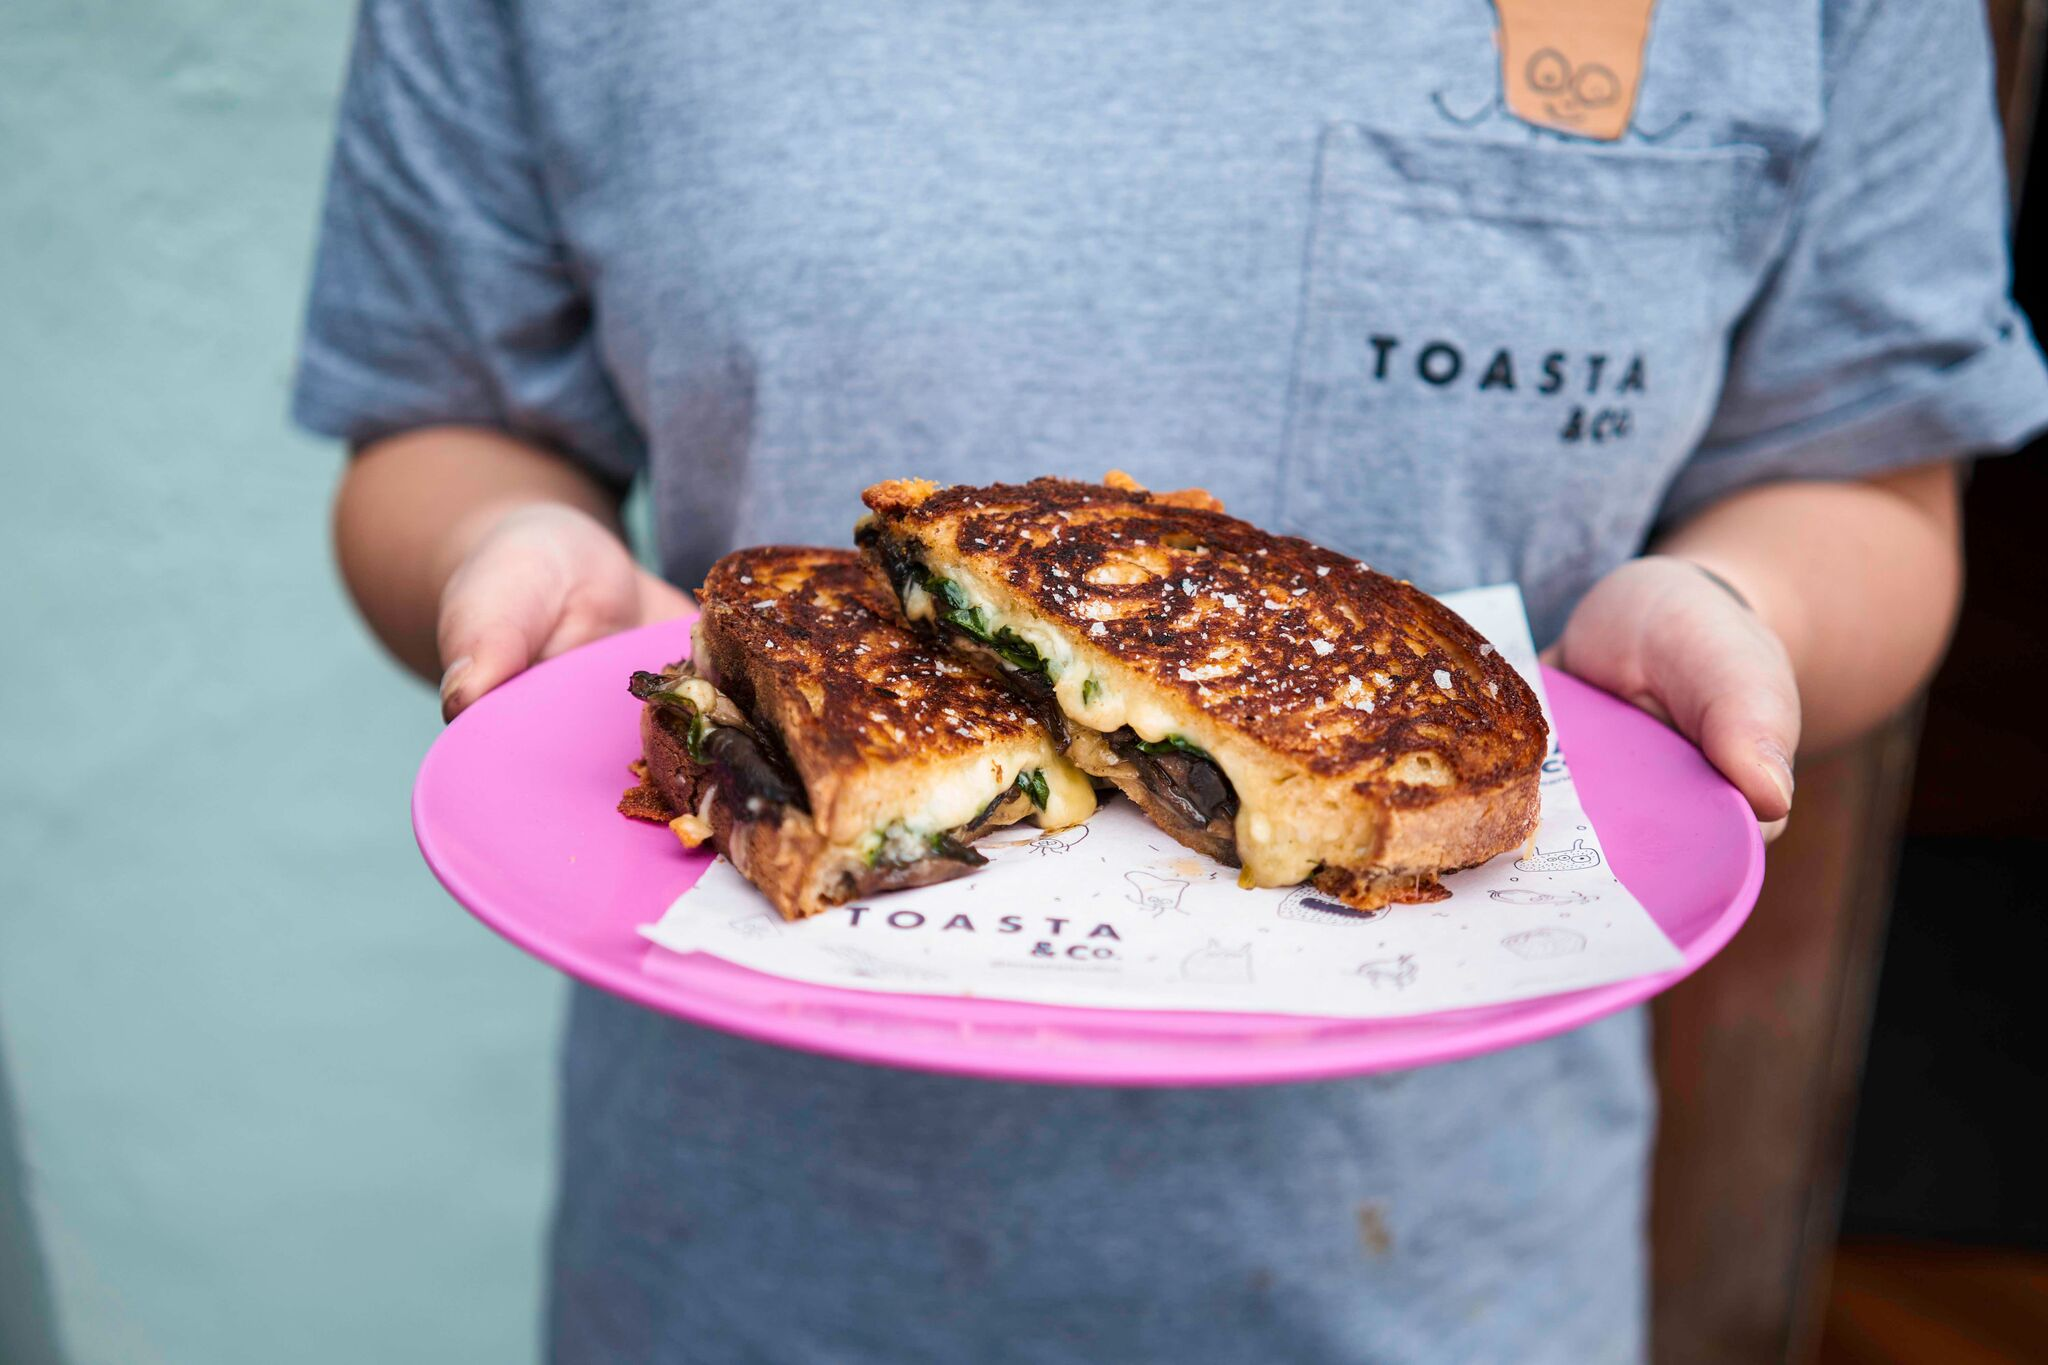 20171011_Toasta (14 of 45)_preview.jpg